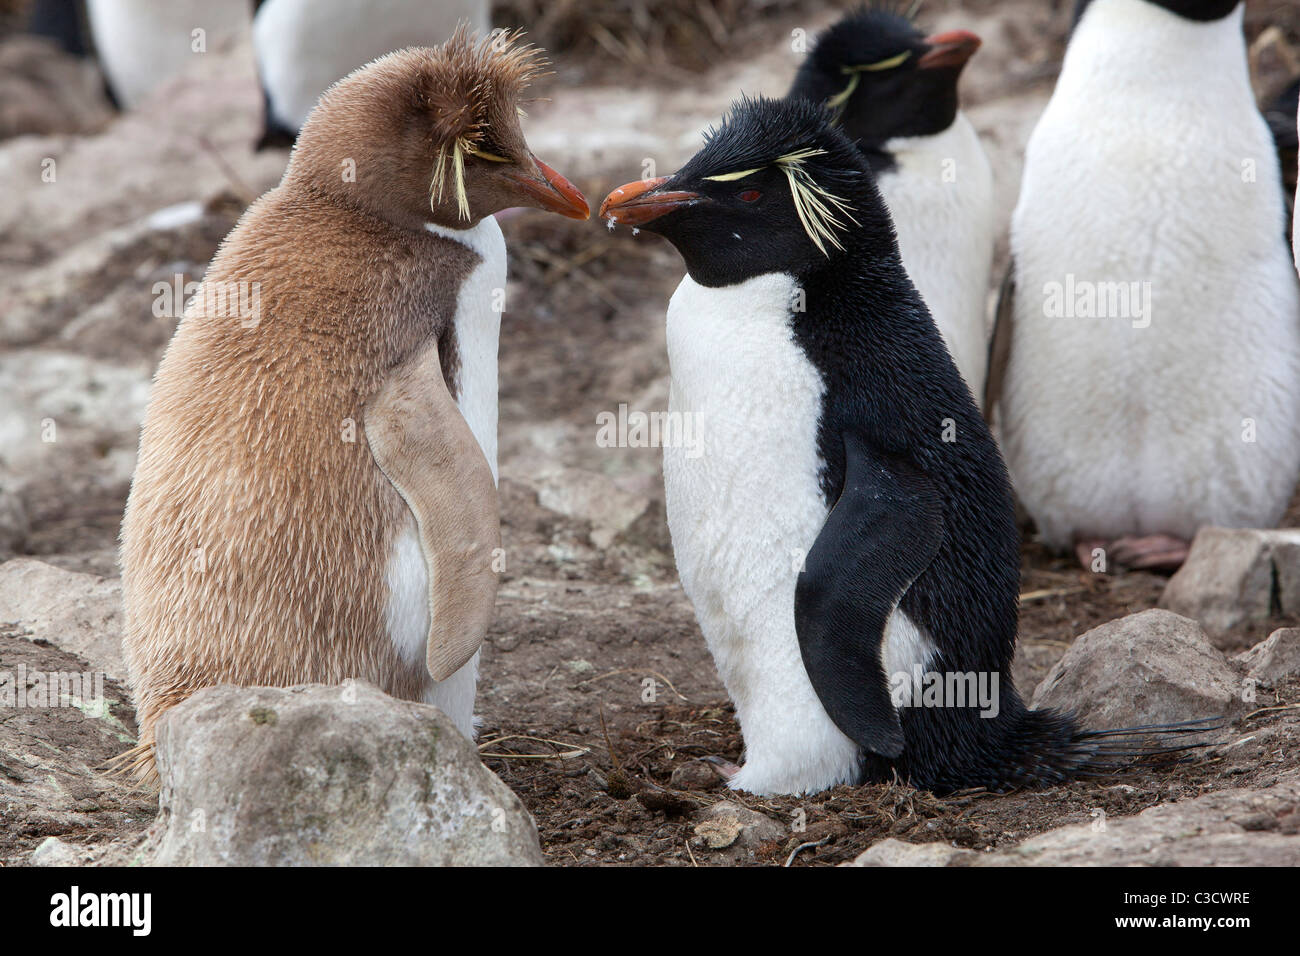 Leucistic Rockhopper Penguin (Eudyptes chrysocome chrysocome) standing next to an individual in normal colors. - Stock Image